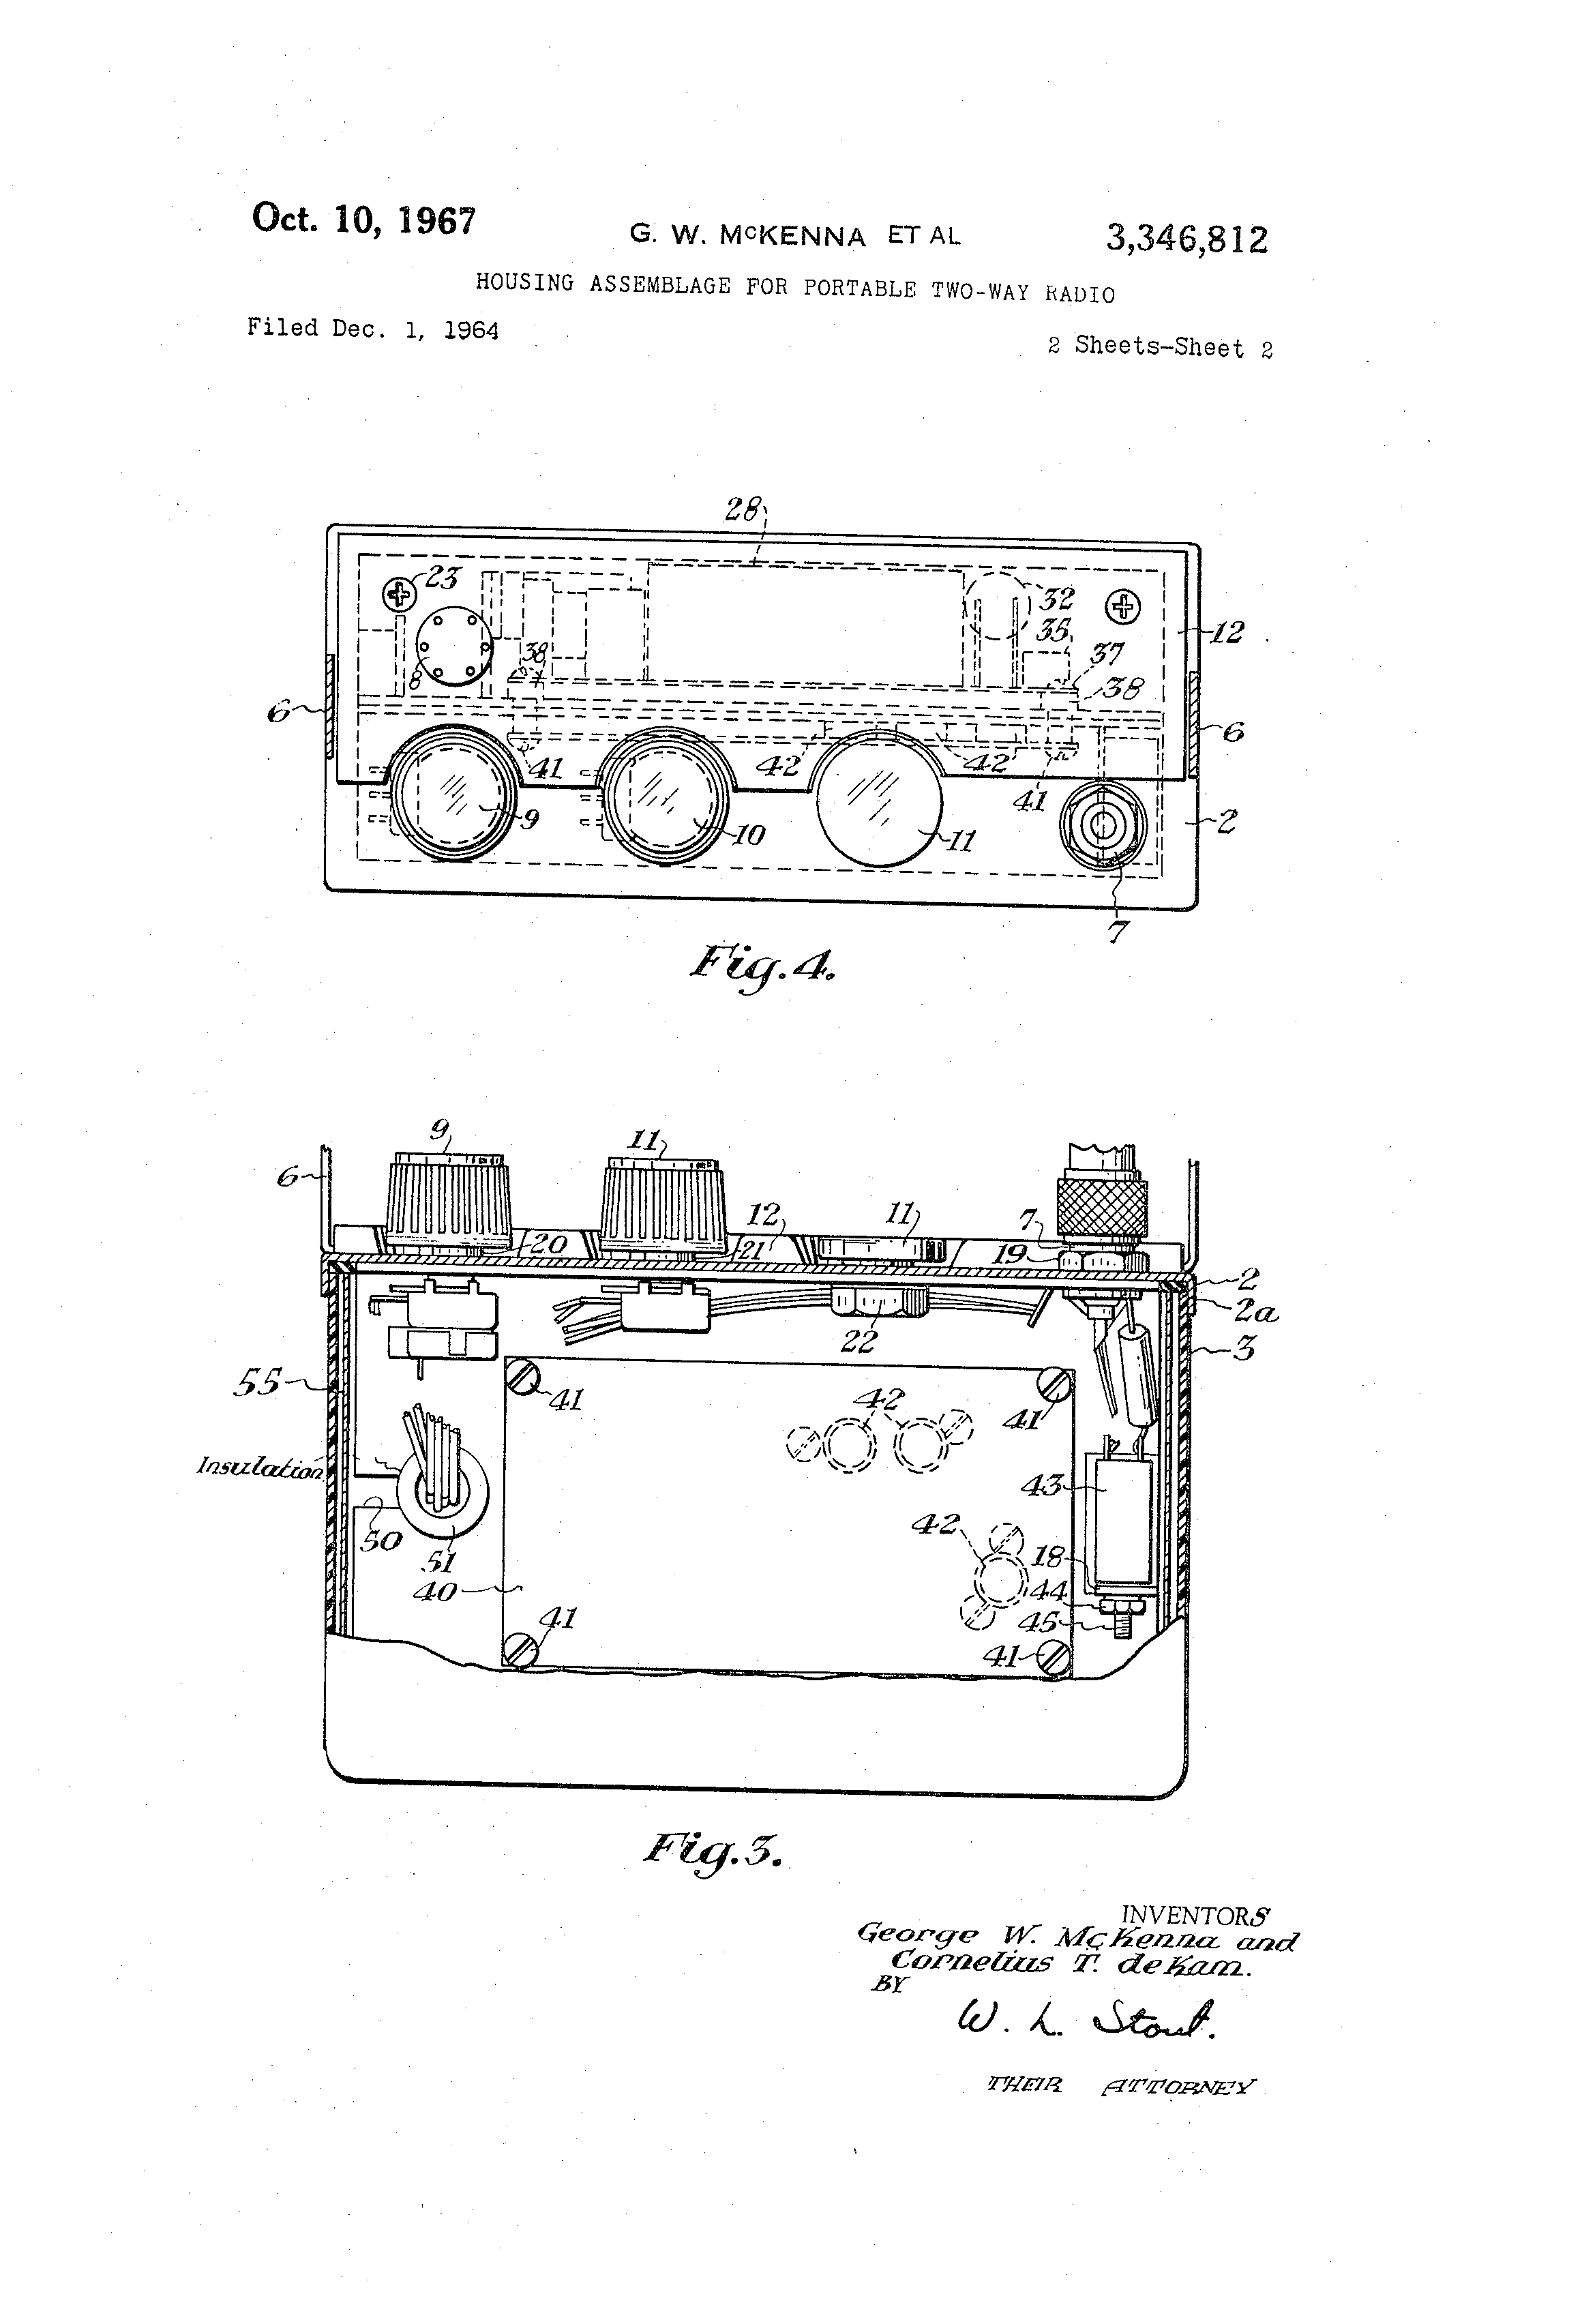 Patent Us3346812 Housing Assemblage For Portable Two Way Radio Figs 1and 2 Shows Transmitter And Receiver Circuit Respectivelythe Drawing